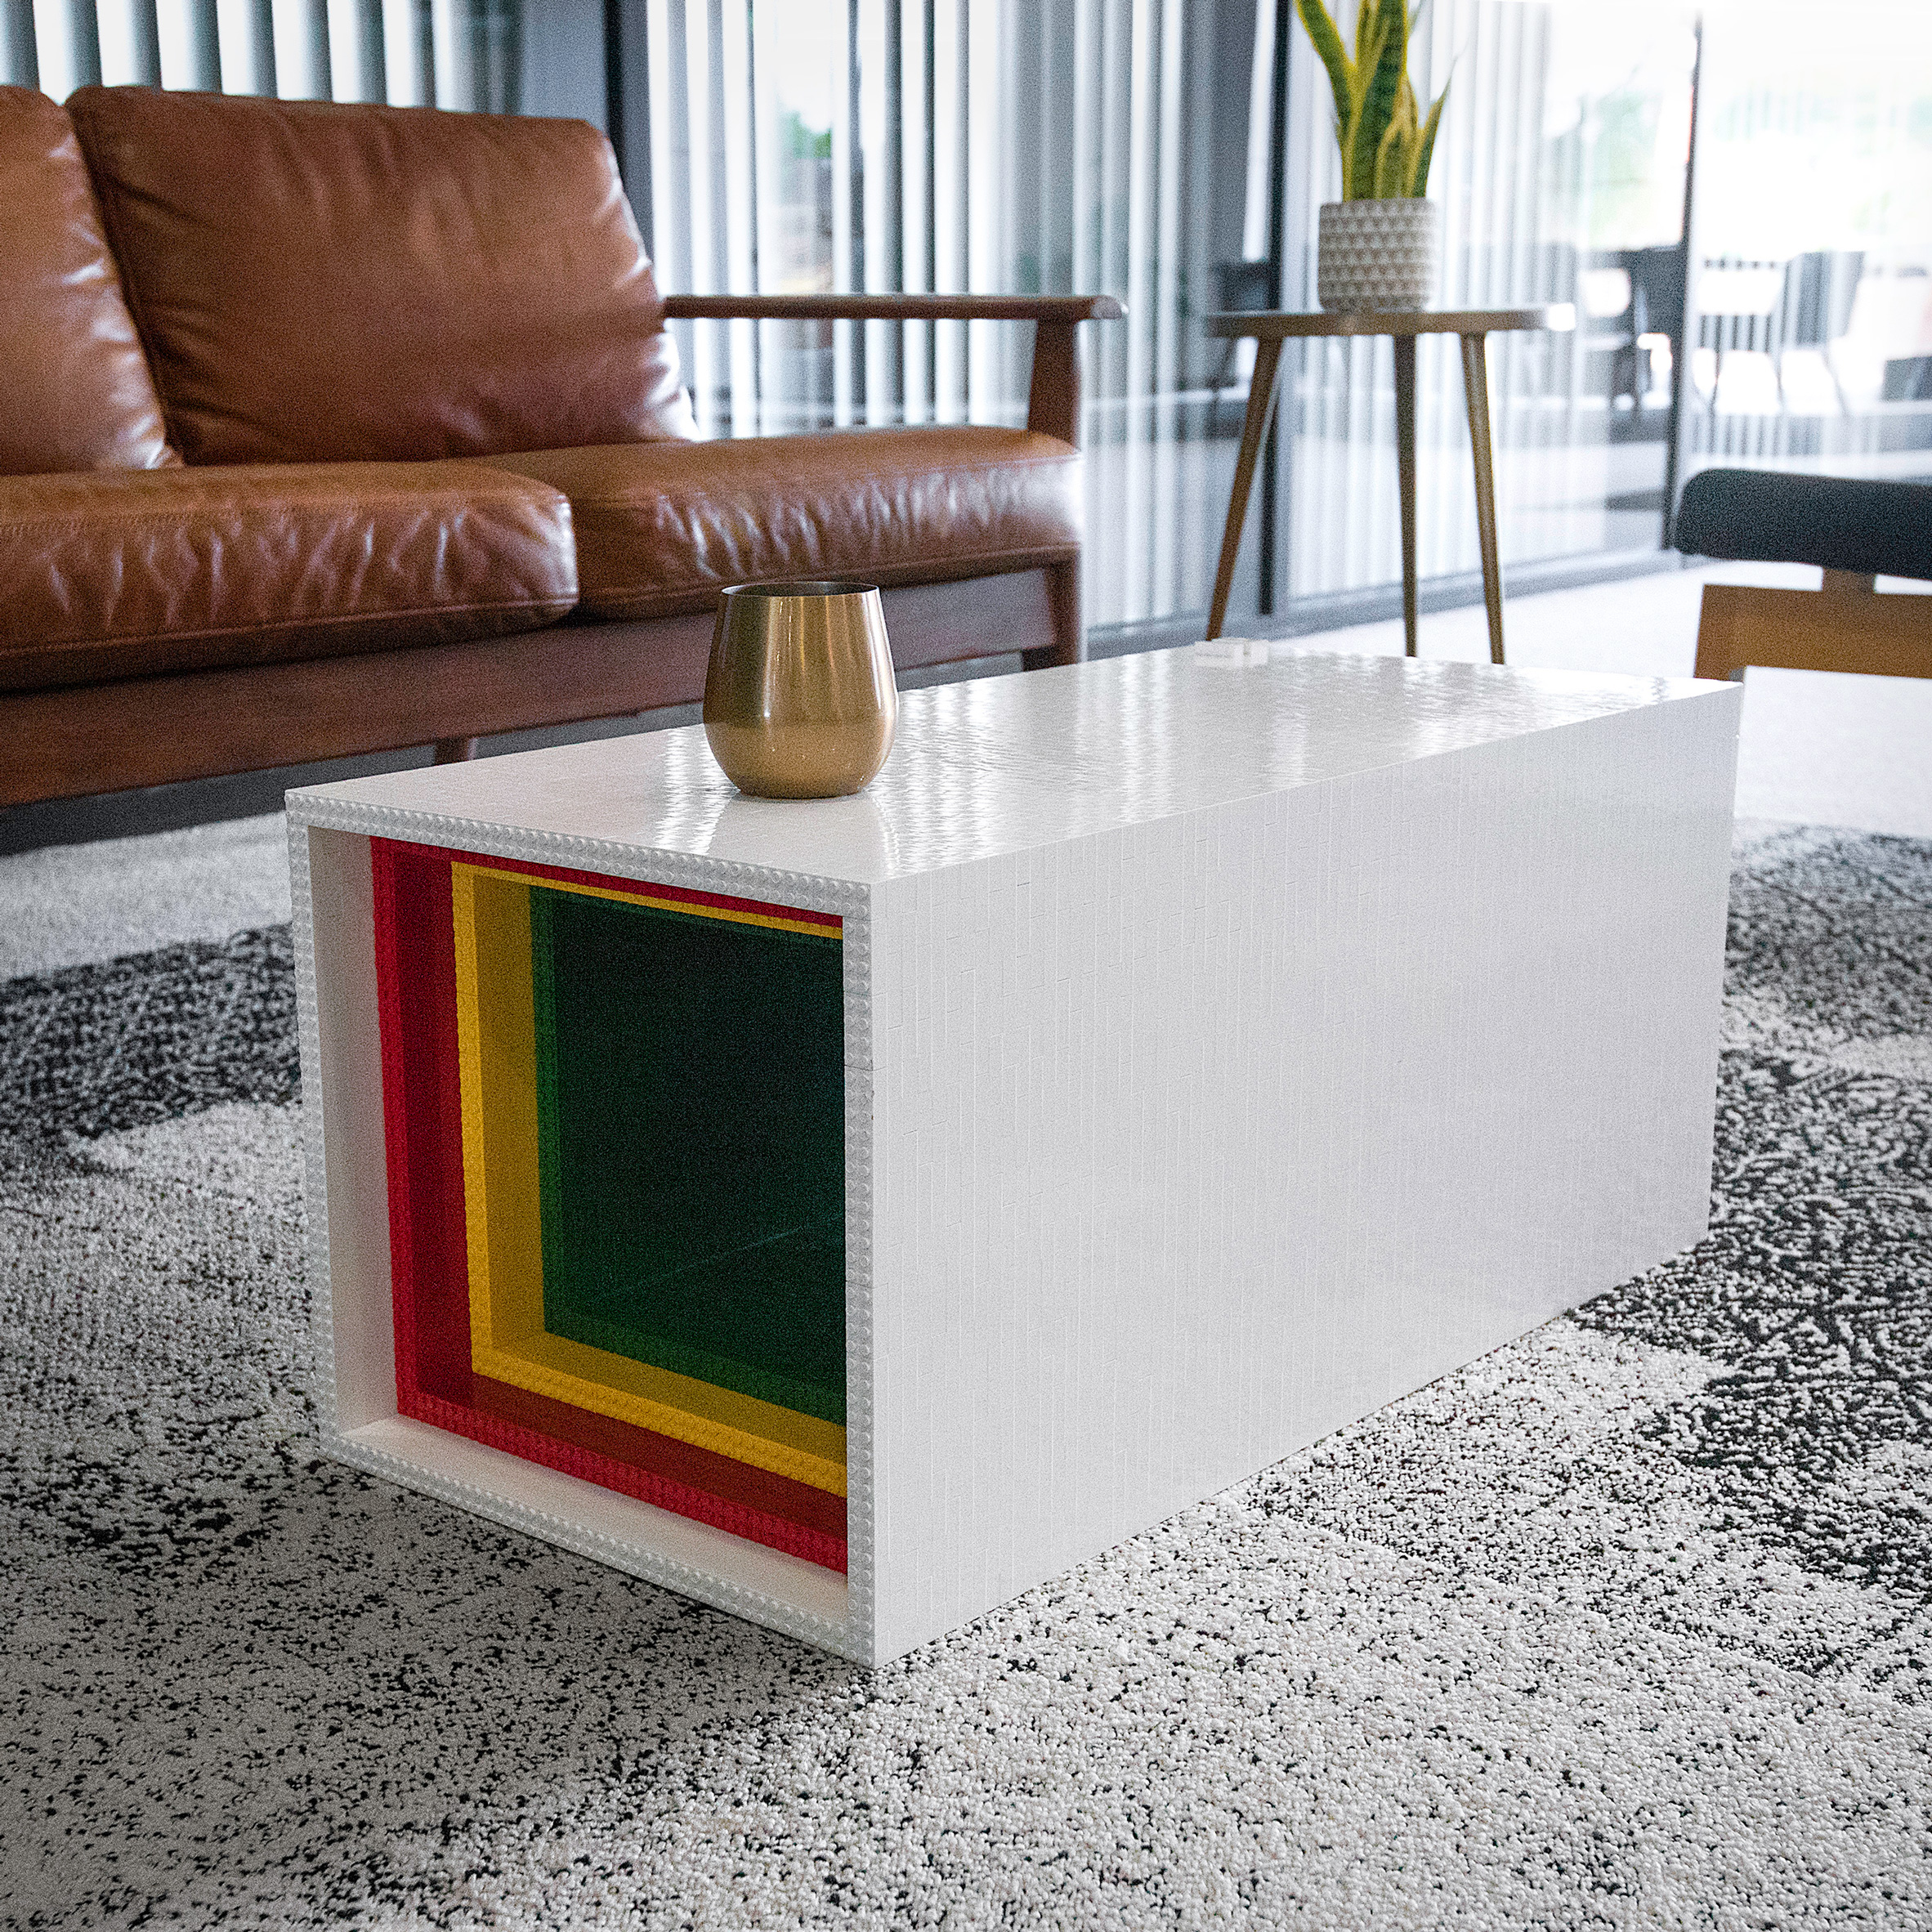 lego table by yusong zhang comprises 10